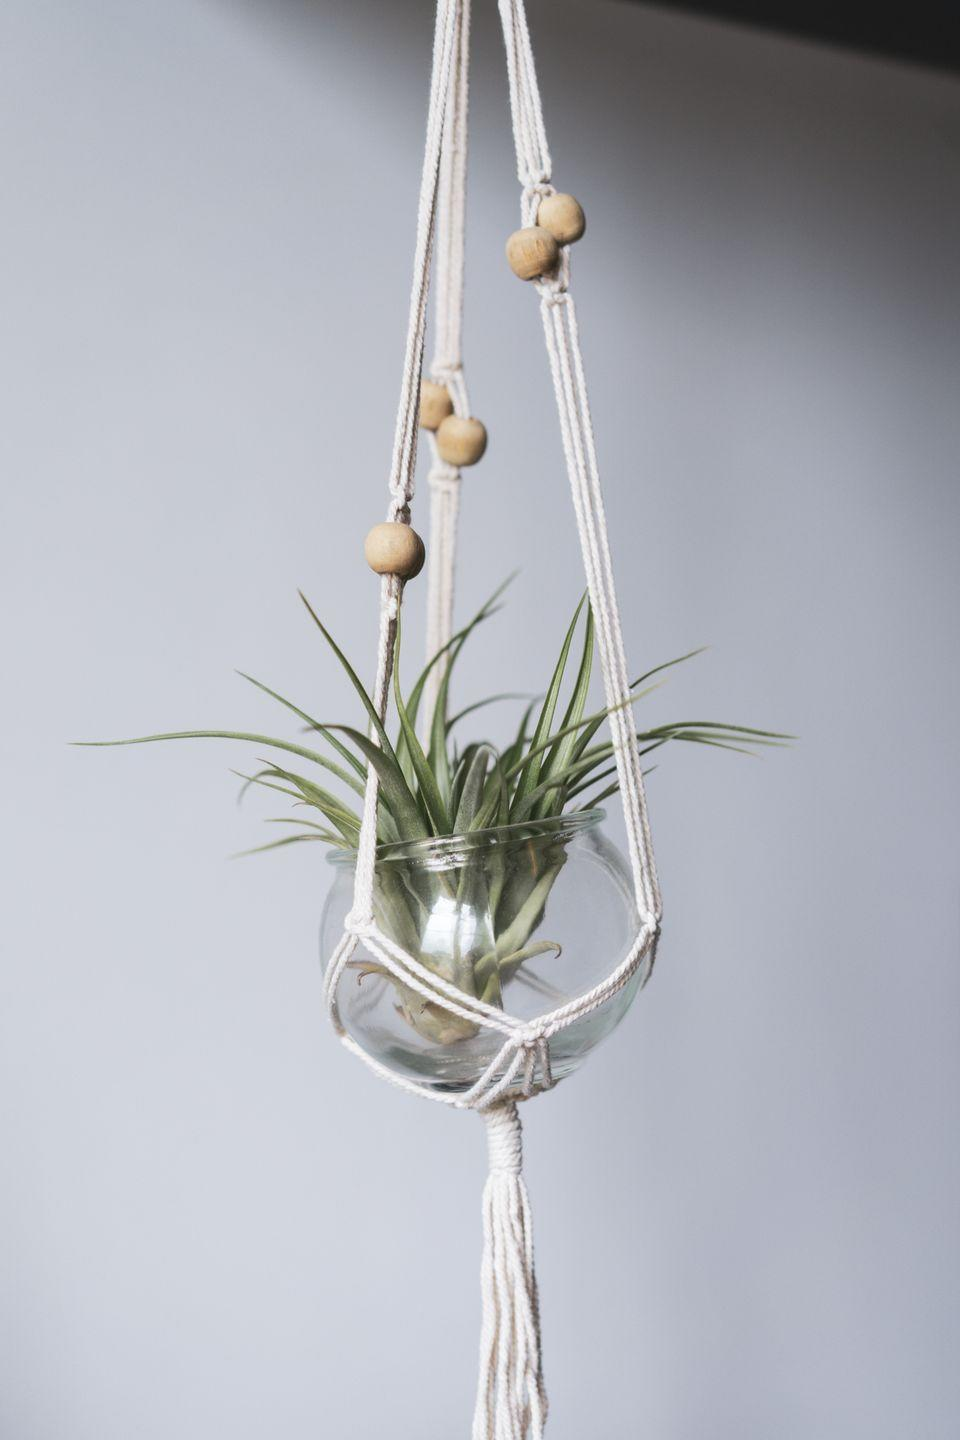 "<p><a class=""link rapid-noclick-resp"" href=""https://www.amazon.com/Plant-Tillandsias-Bliss-Gardens-Plants/dp/B01E89YPDQ/?tag=syn-yahoo-20&ascsubtag=%5Bartid%7C10057.g.30655732%5Bsrc%7Cyahoo-us"" rel=""nofollow noopener"" target=""_blank"" data-ylk=""slk:BUY NOW"">BUY NOW</a> <strong><em>Assorted Air Plants, $14, amazon.com </em></strong></p><p>And of course, there are always air plants. Hang these little plants in terrariums or other holders wherever you want to add a little flair to your kitchen, and you can rest easy knowing they're super <a href=""https://www.housebeautiful.com/lifestyle/gardening/a26912800/air-plant-care/"" rel=""nofollow noopener"" target=""_blank"" data-ylk=""slk:simple to care for"" class=""link rapid-noclick-resp"">simple to care for</a>. You can even <a href=""https://go.redirectingat.com?id=74968X1596630&url=https%3A%2F%2Fwww.etsy.com%2Flisting%2F255370814%2Fair-plant-magnets-3-ionantha-air-plants&sref=https%3A%2F%2Fwww.housebeautiful.com%2Flifestyle%2Fgardening%2Fg30655732%2Fkitchen-plants%2F"" rel=""nofollow noopener"" target=""_blank"" data-ylk=""slk:put them in magnets"" class=""link rapid-noclick-resp"">put them in magnets</a> on your fridge!</p>"